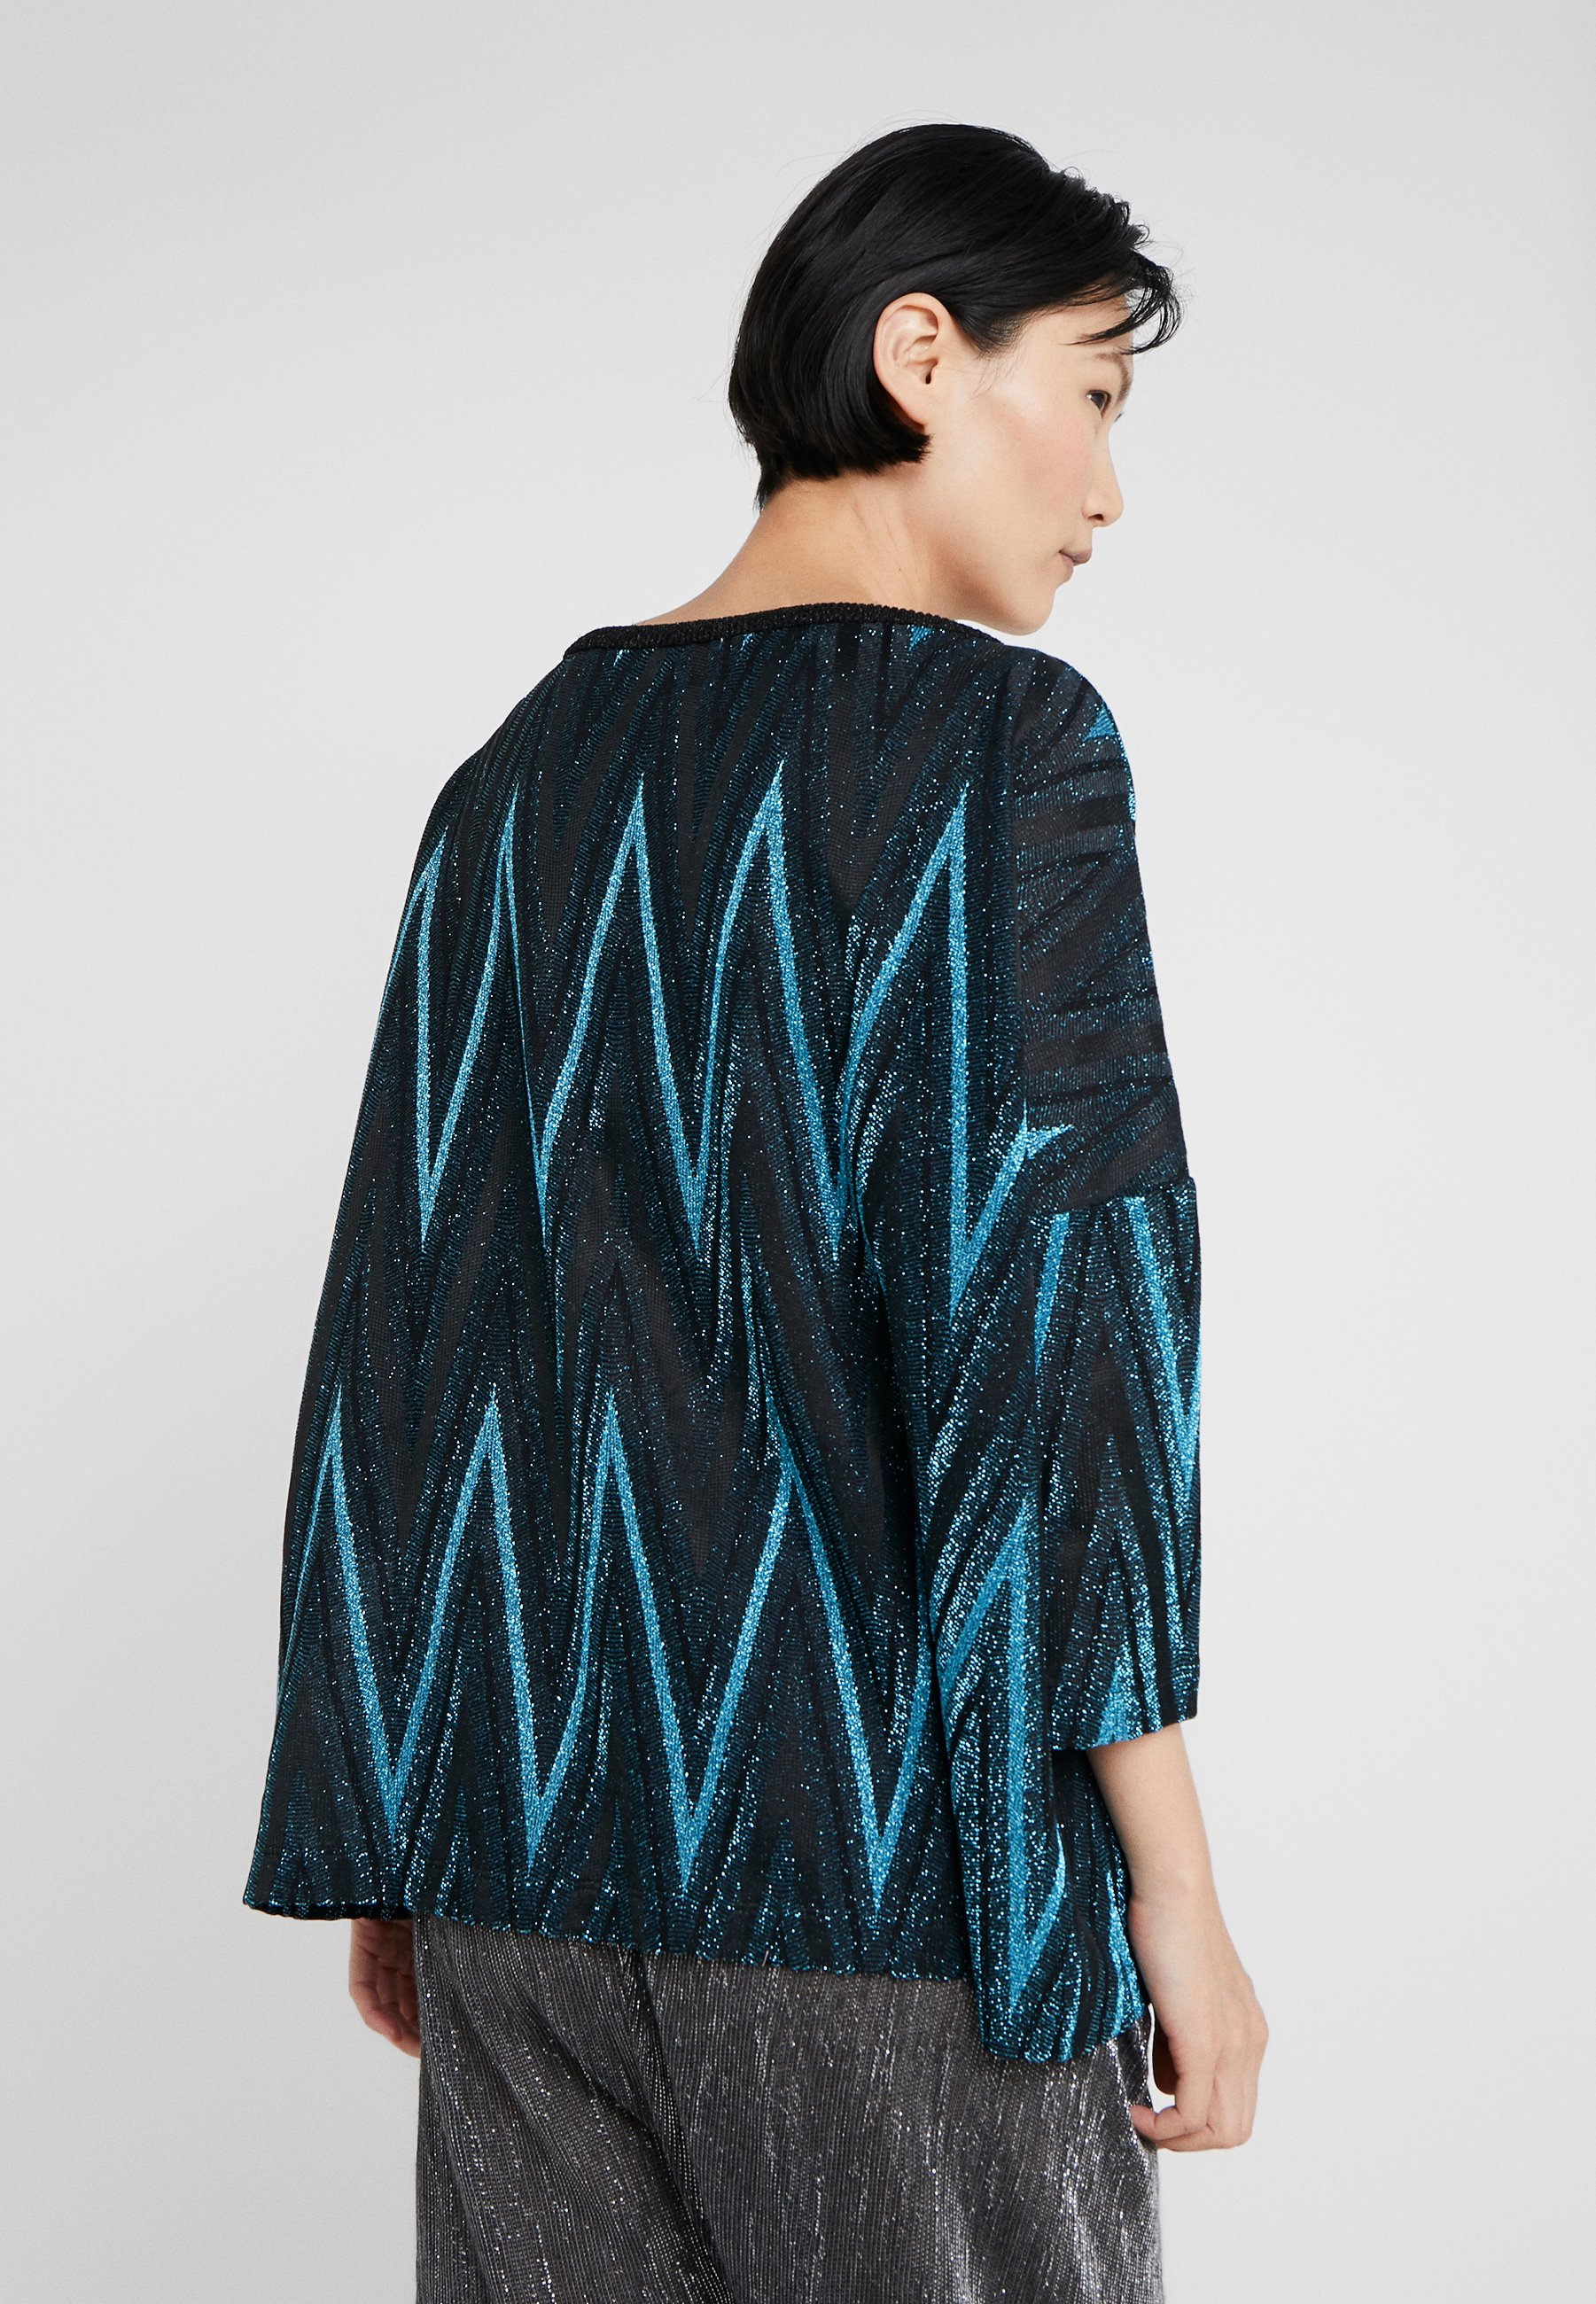 Missoni Missoni M M PulloverBlue Missoni M M PulloverBlue PulloverBlue Missoni eoWdBrCx